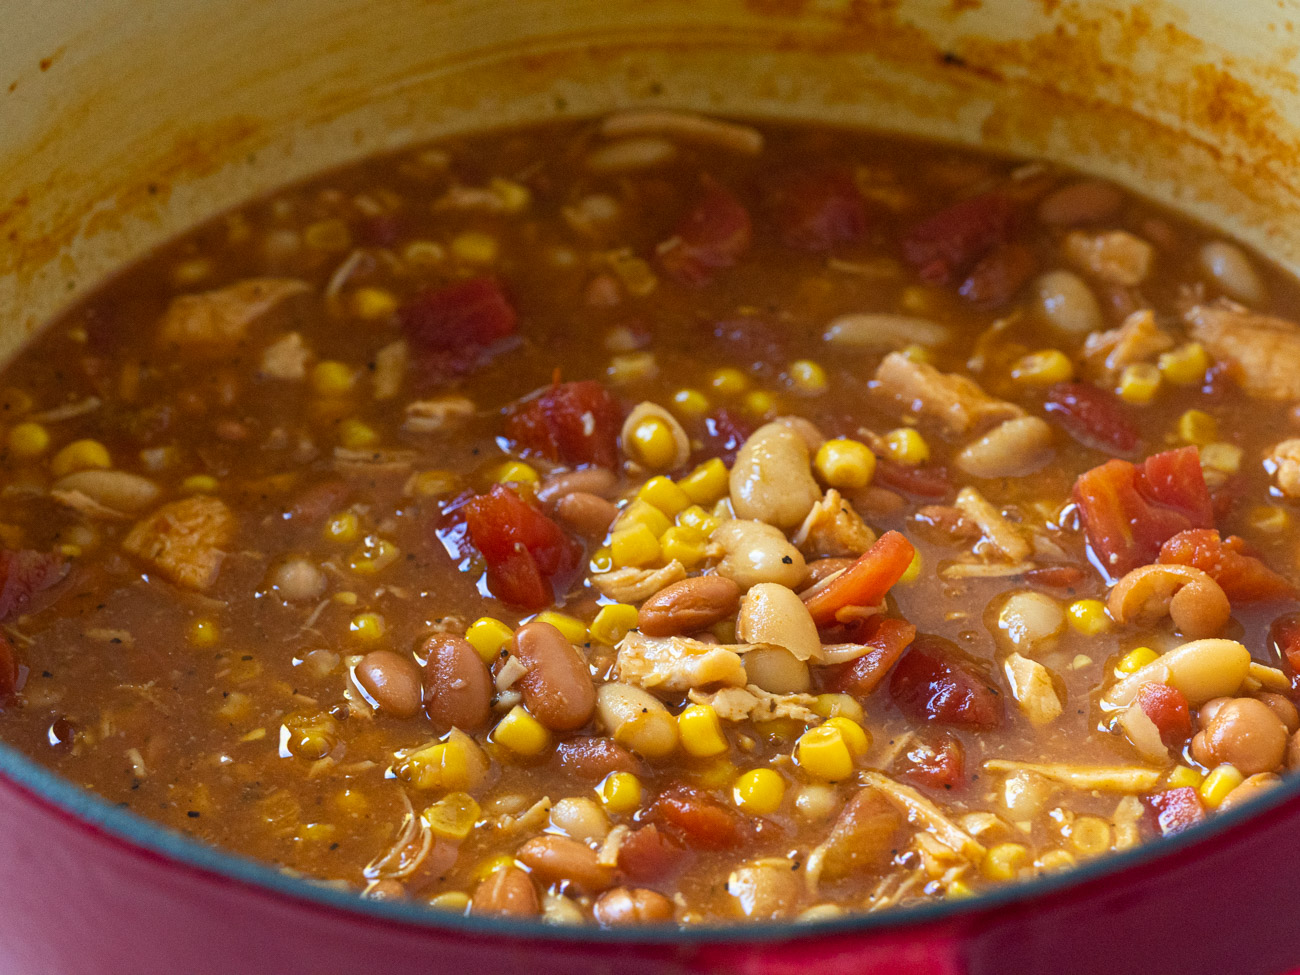 Bring to a boil, then reduce heat and simmer for 30 minutes.